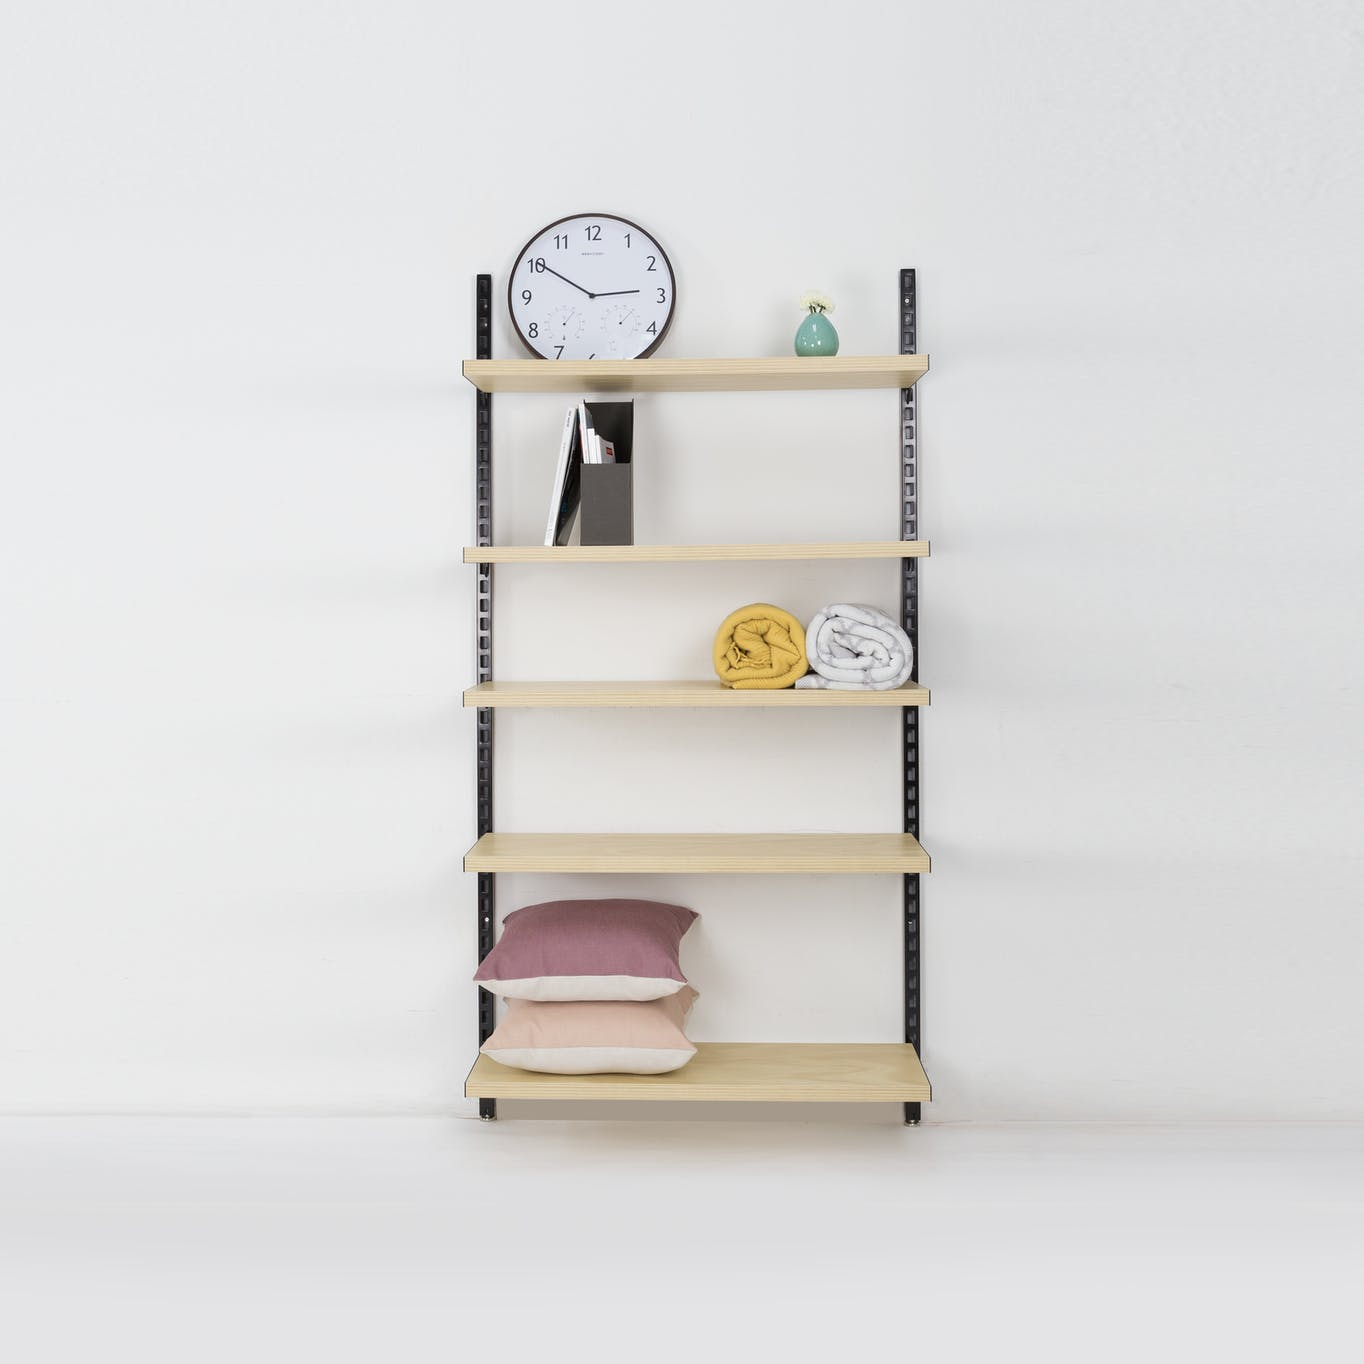 Book shelf storage system with black tracks and wooden shelves